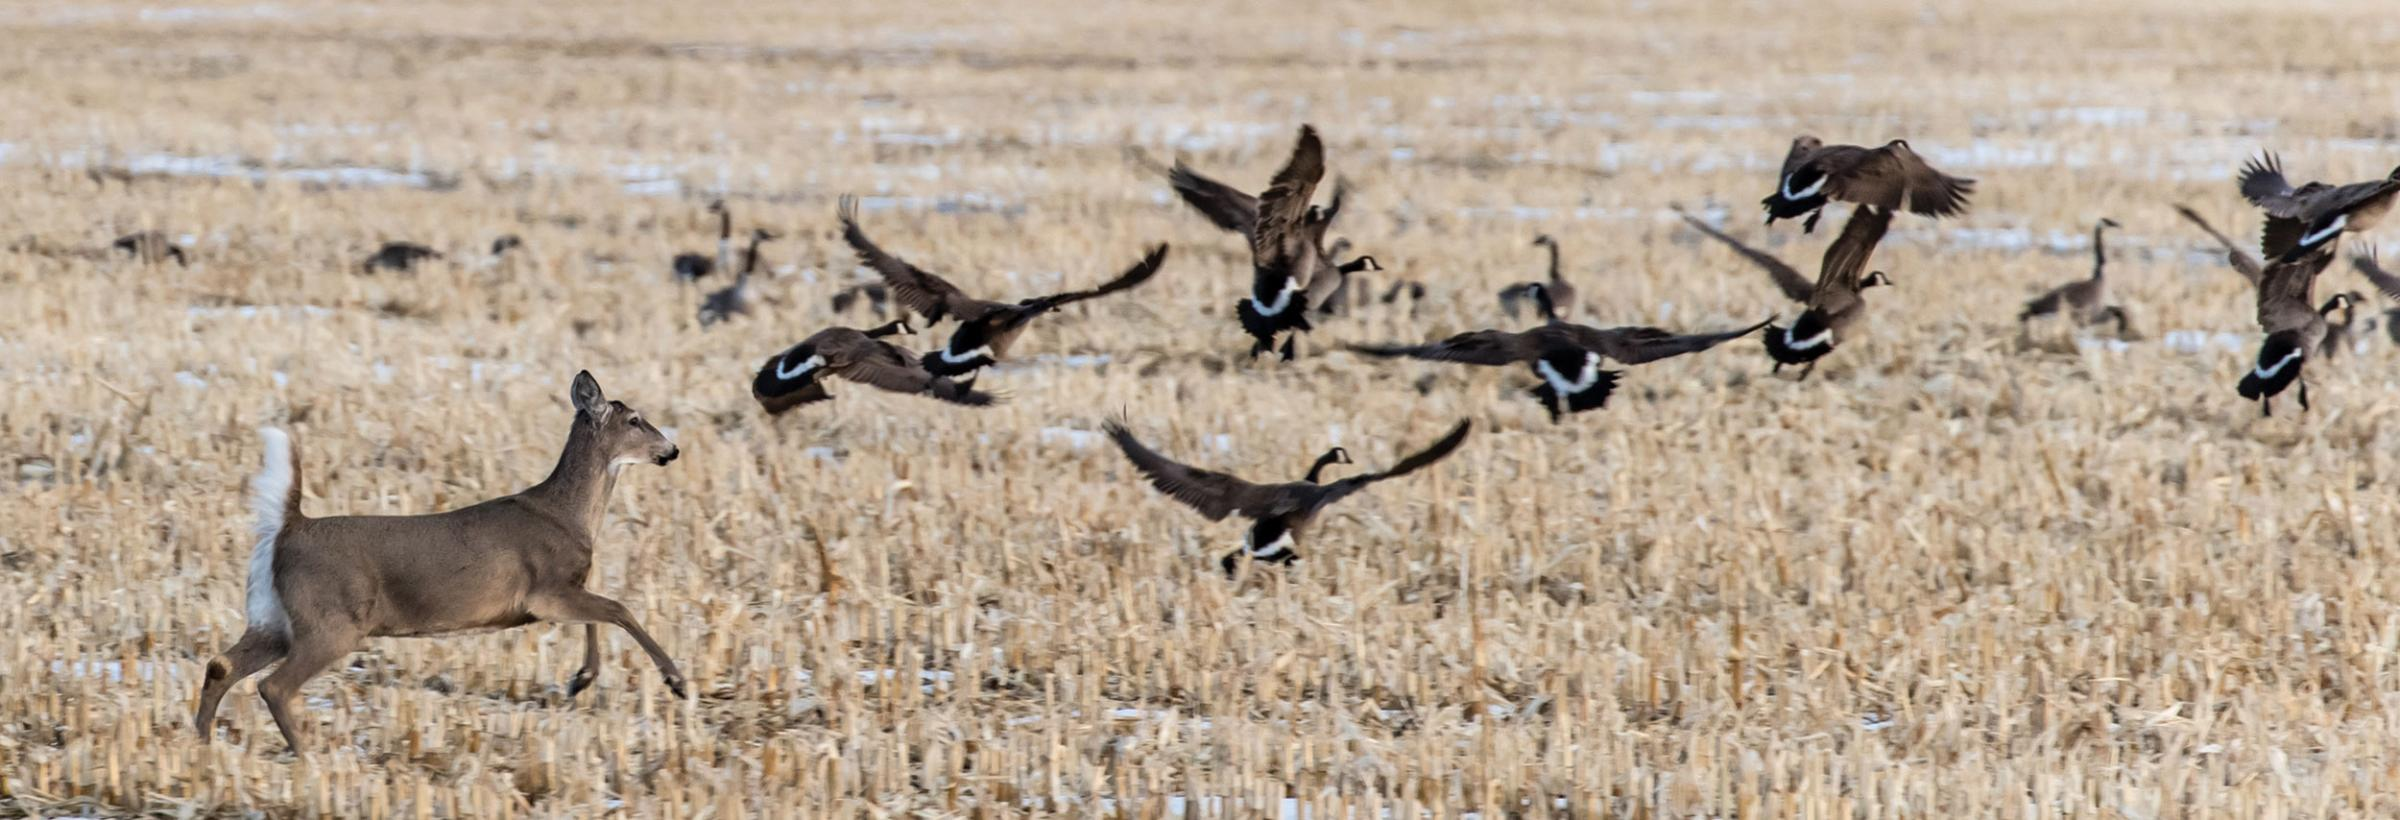 White-tailed deer running across field causing Canada geese to fly up